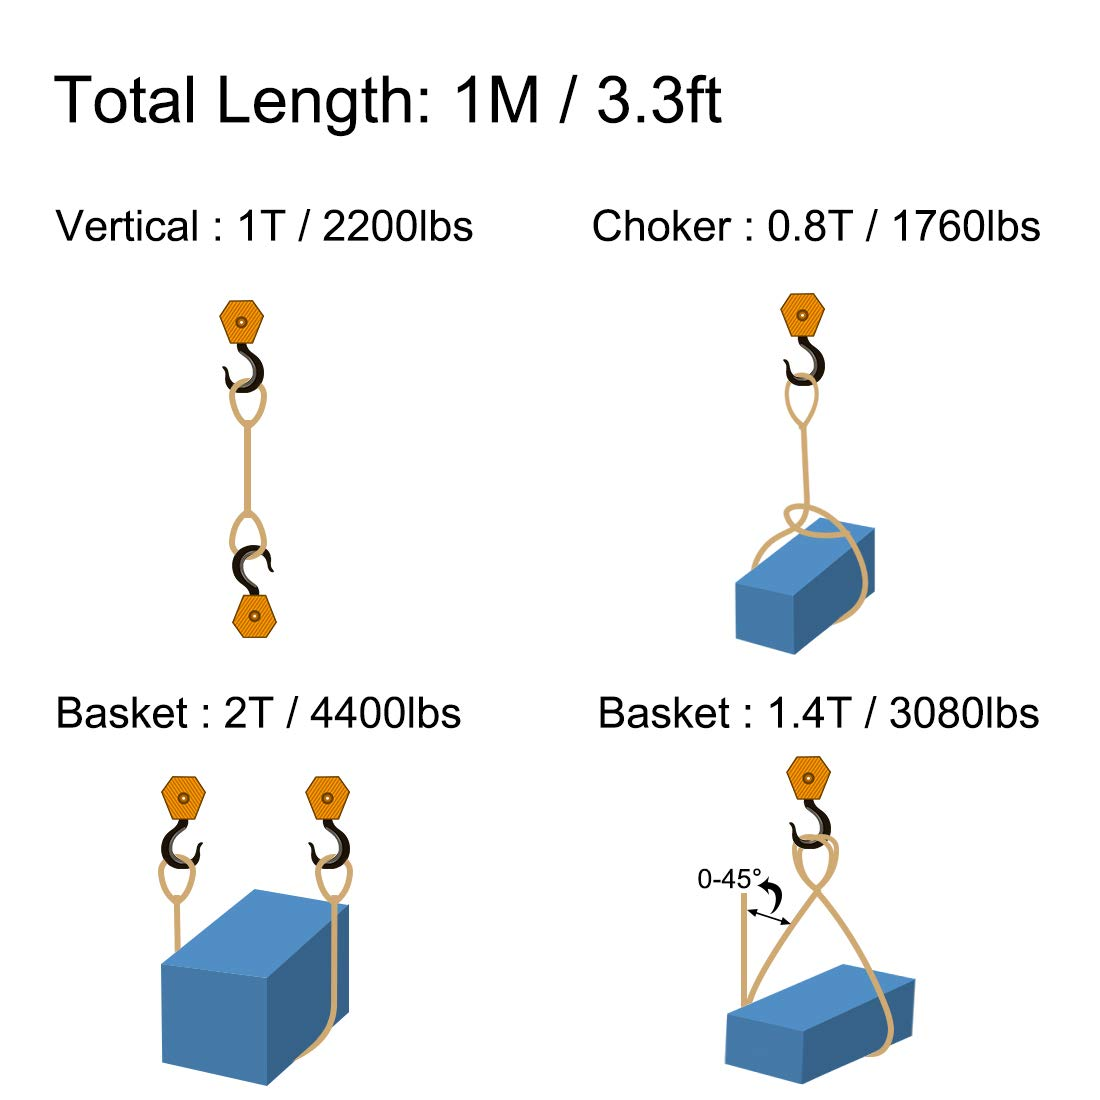 Eye to Eye for Moving Towing Hoisting Work Gear Pack of 2 2200lbs Capacity uxcell Lifting Web Strap 1.3 x 3.3